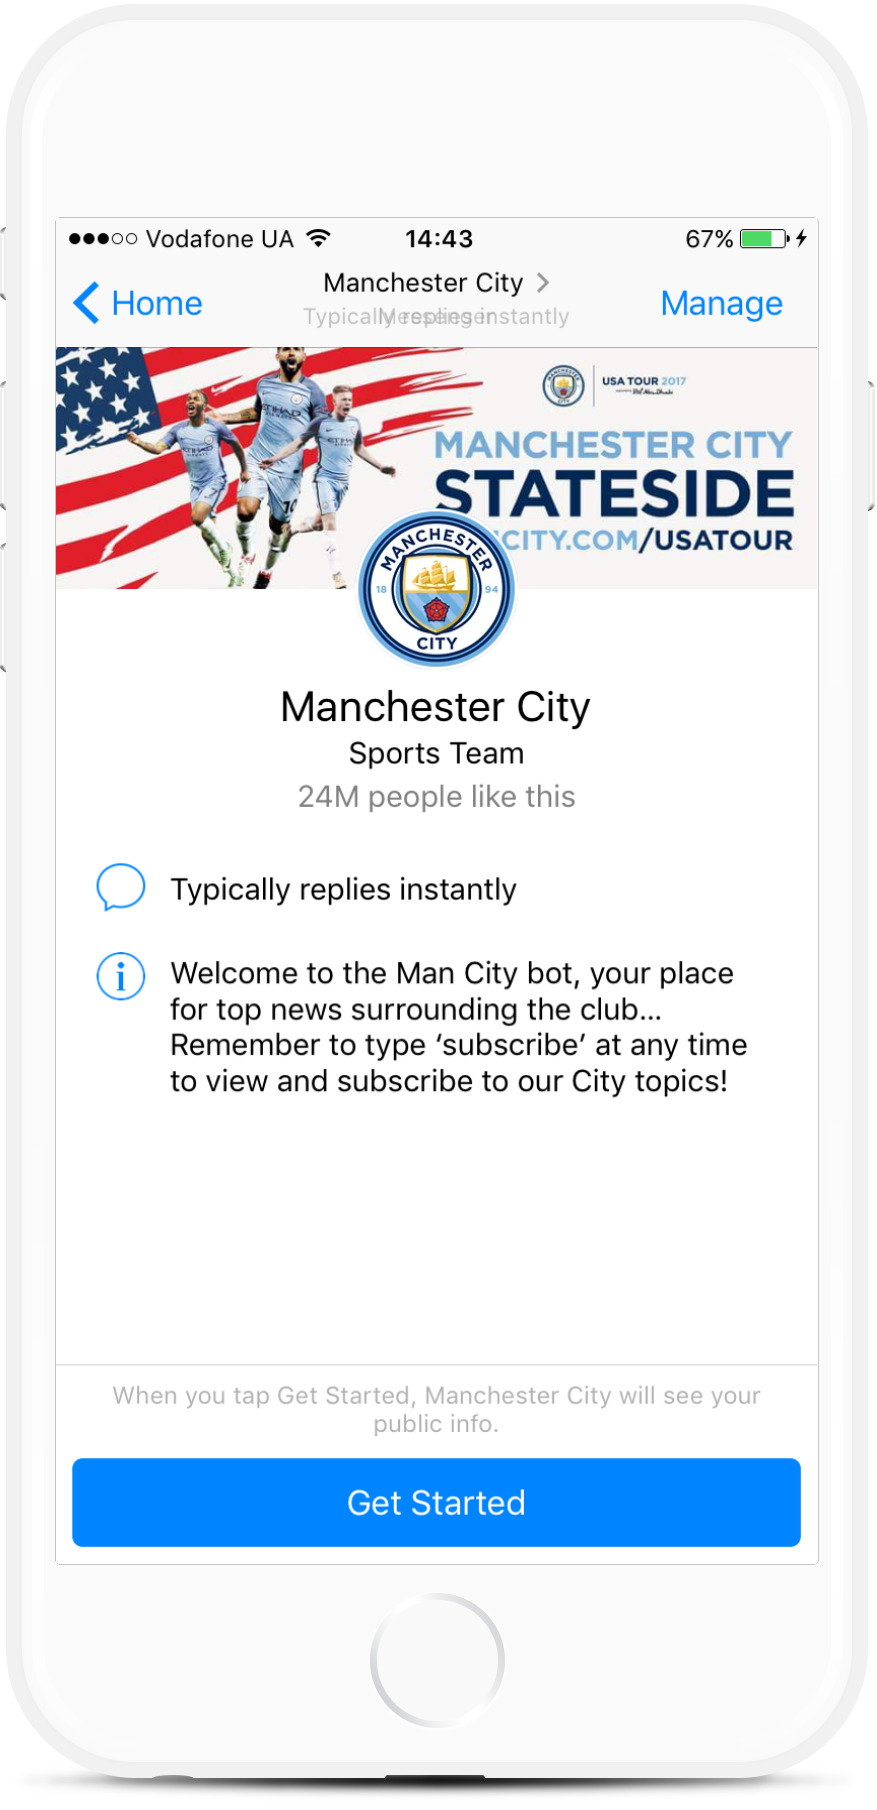 Facebook Messenger Bot Template for Sports Clubs and Teams